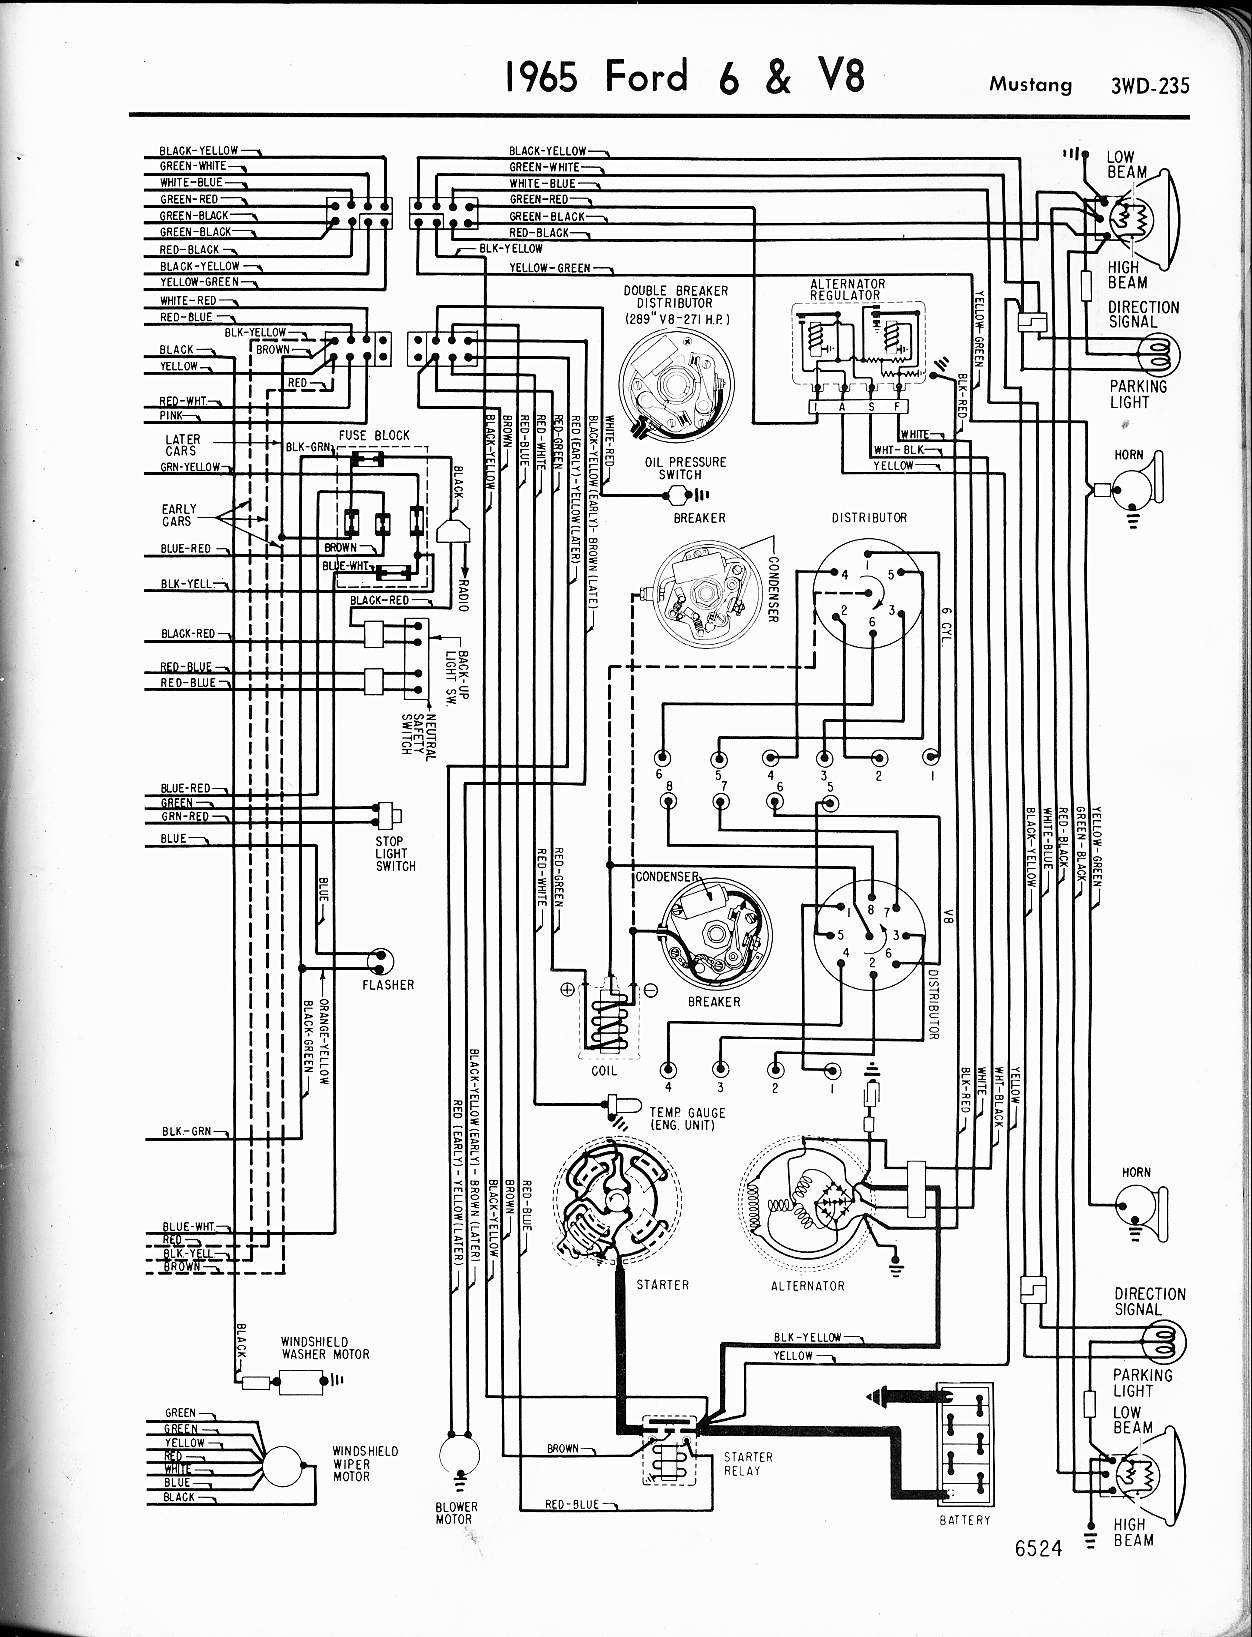 1965_mustang_wiring_2 ford diagrams old ford wiring harness at eliteediting.co